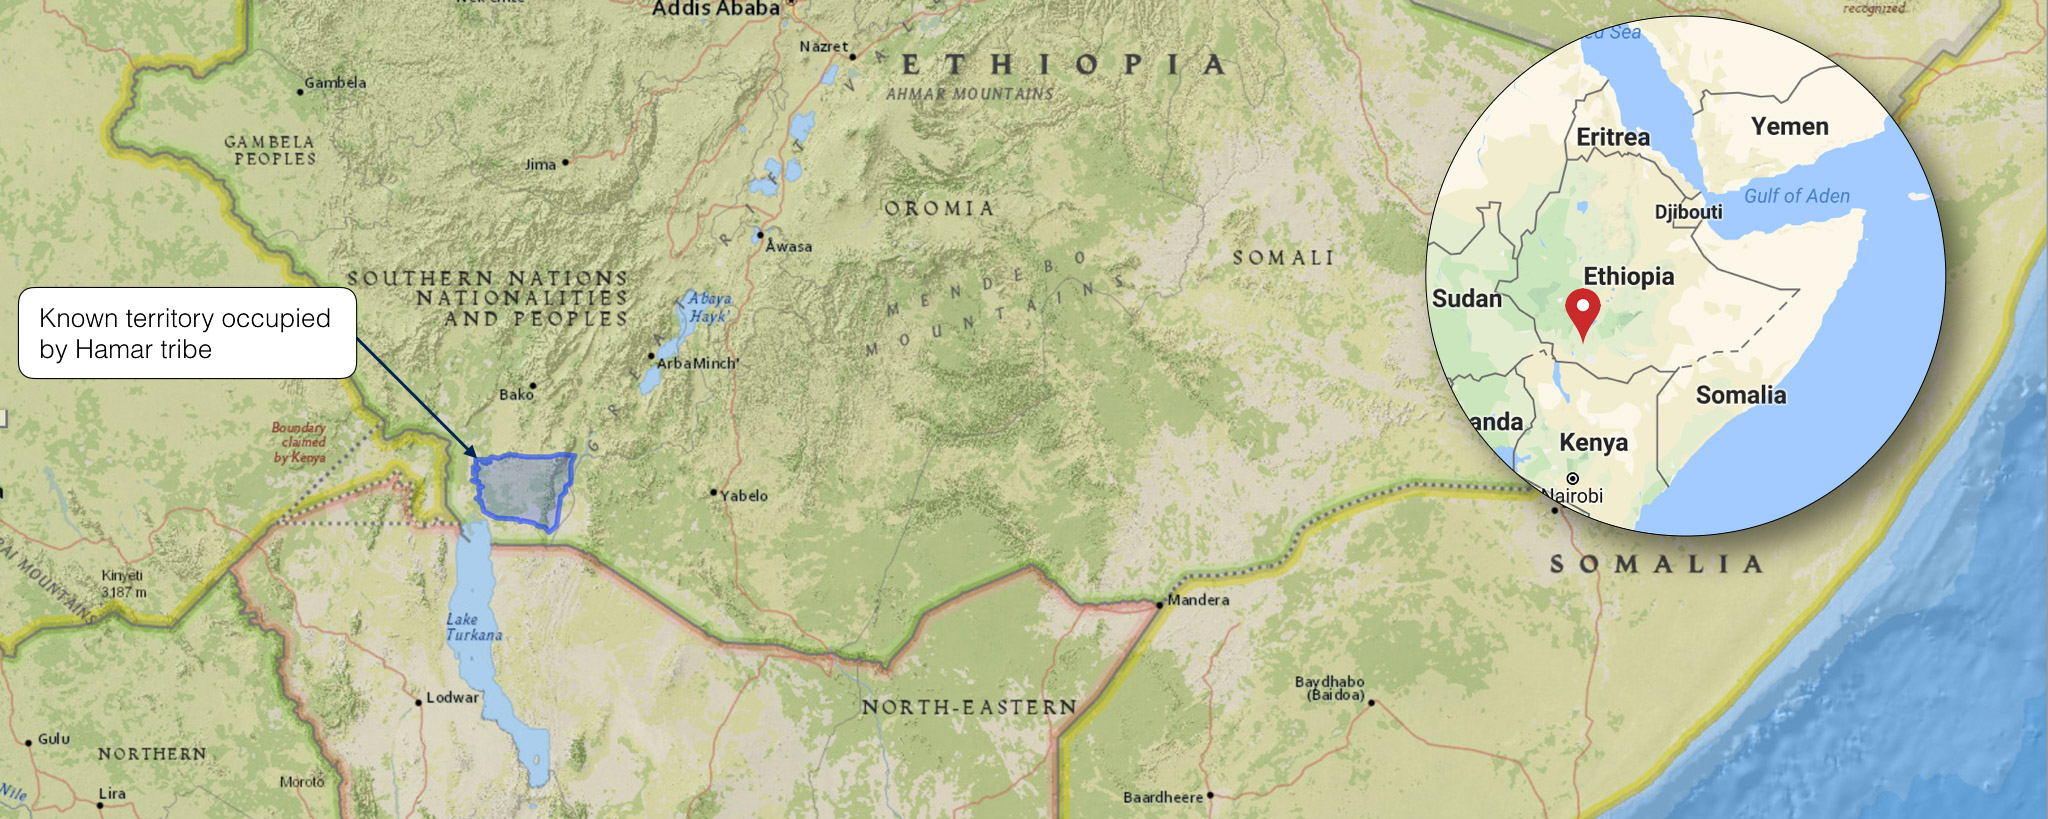 HAMAR TRIBE MAP, LOWER OMO VALLEY, ETHIOPIA